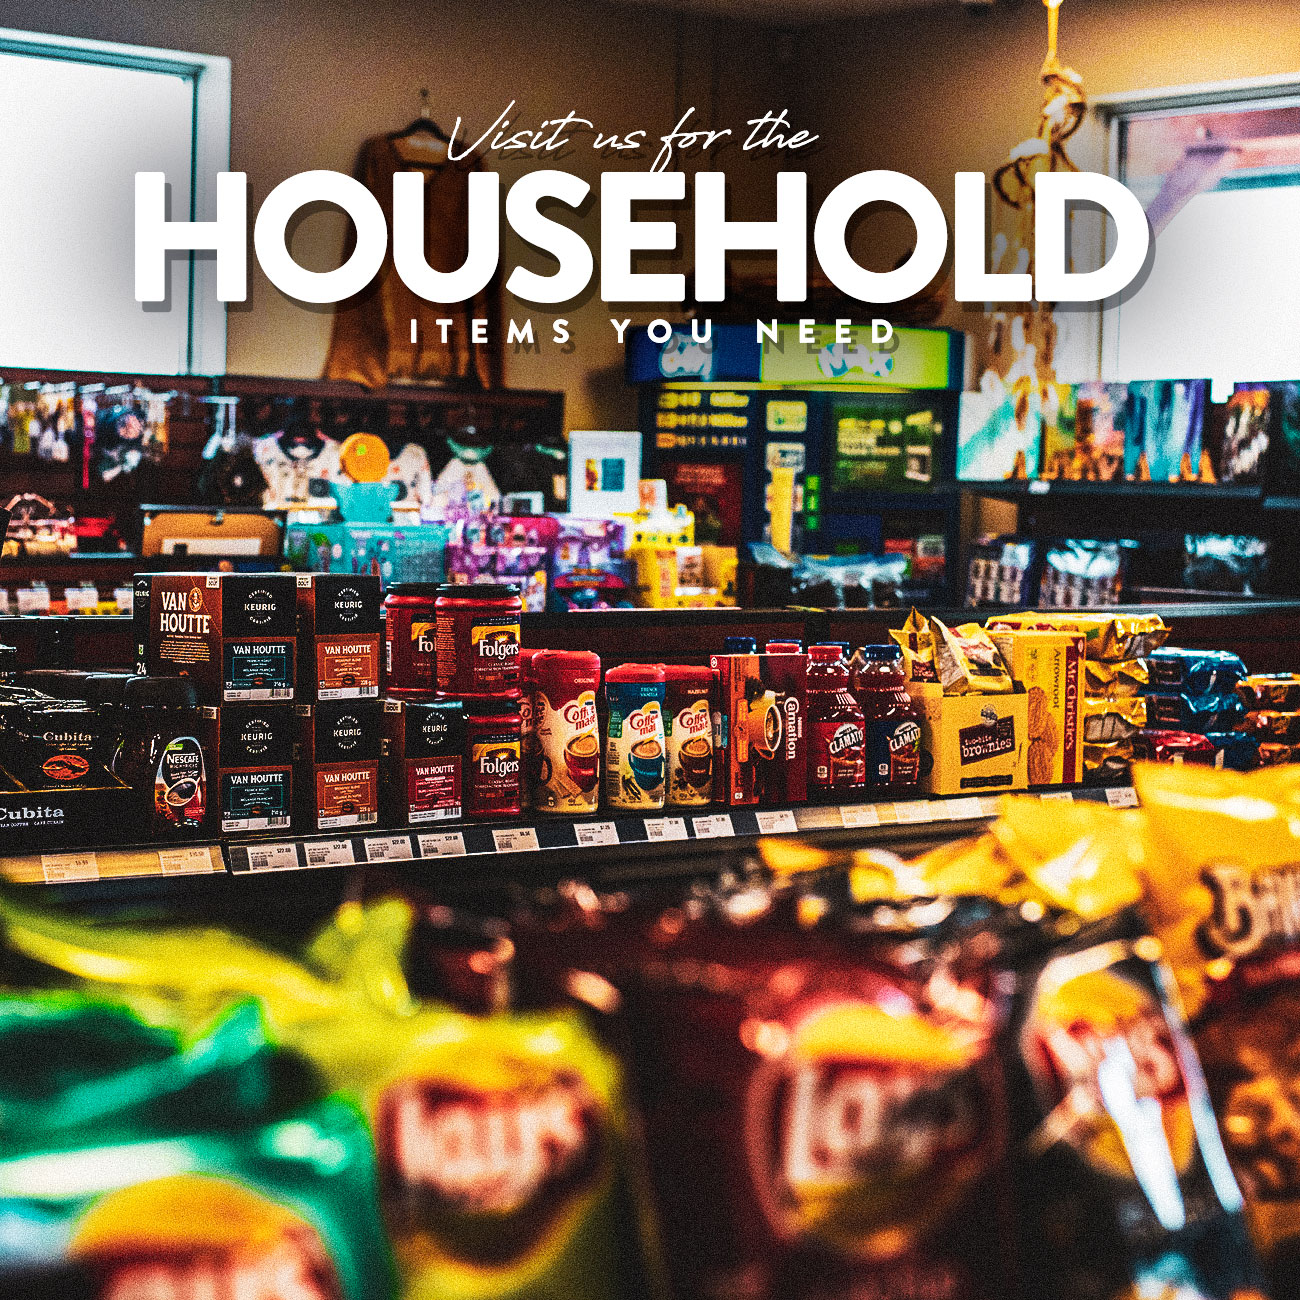 Visit us for the household items you need